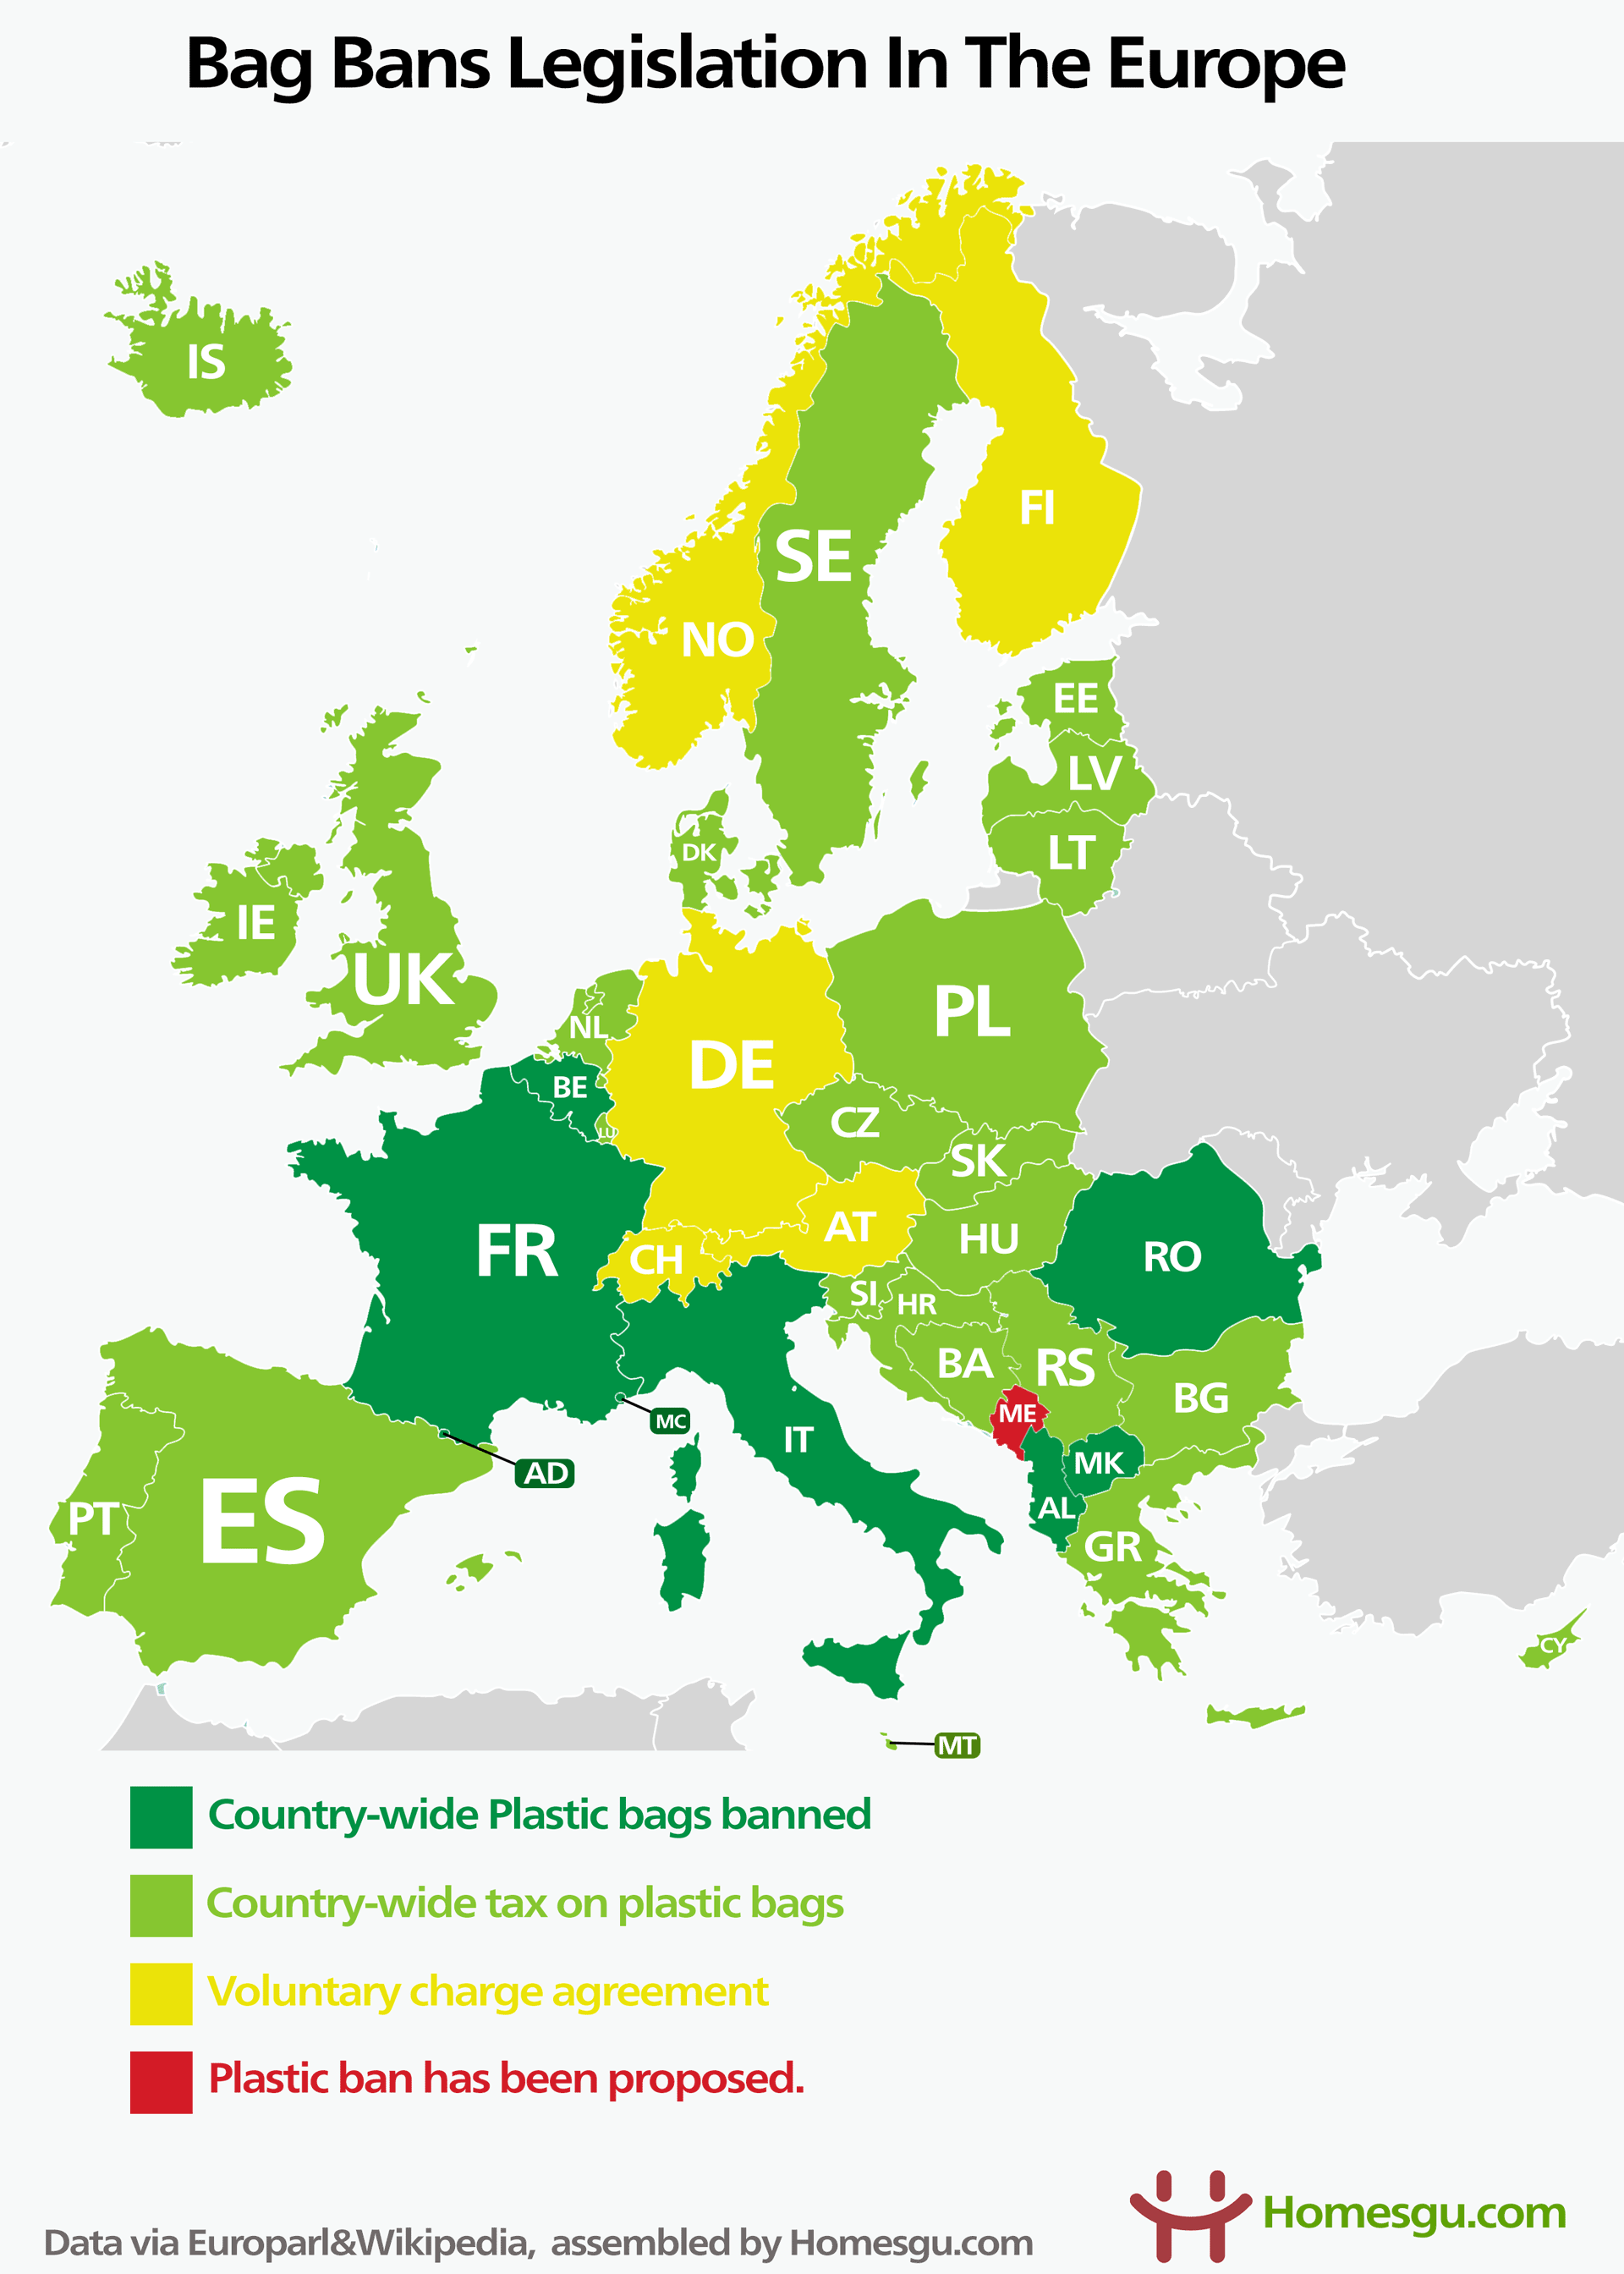 map of plastic bag bans legislation in the european union